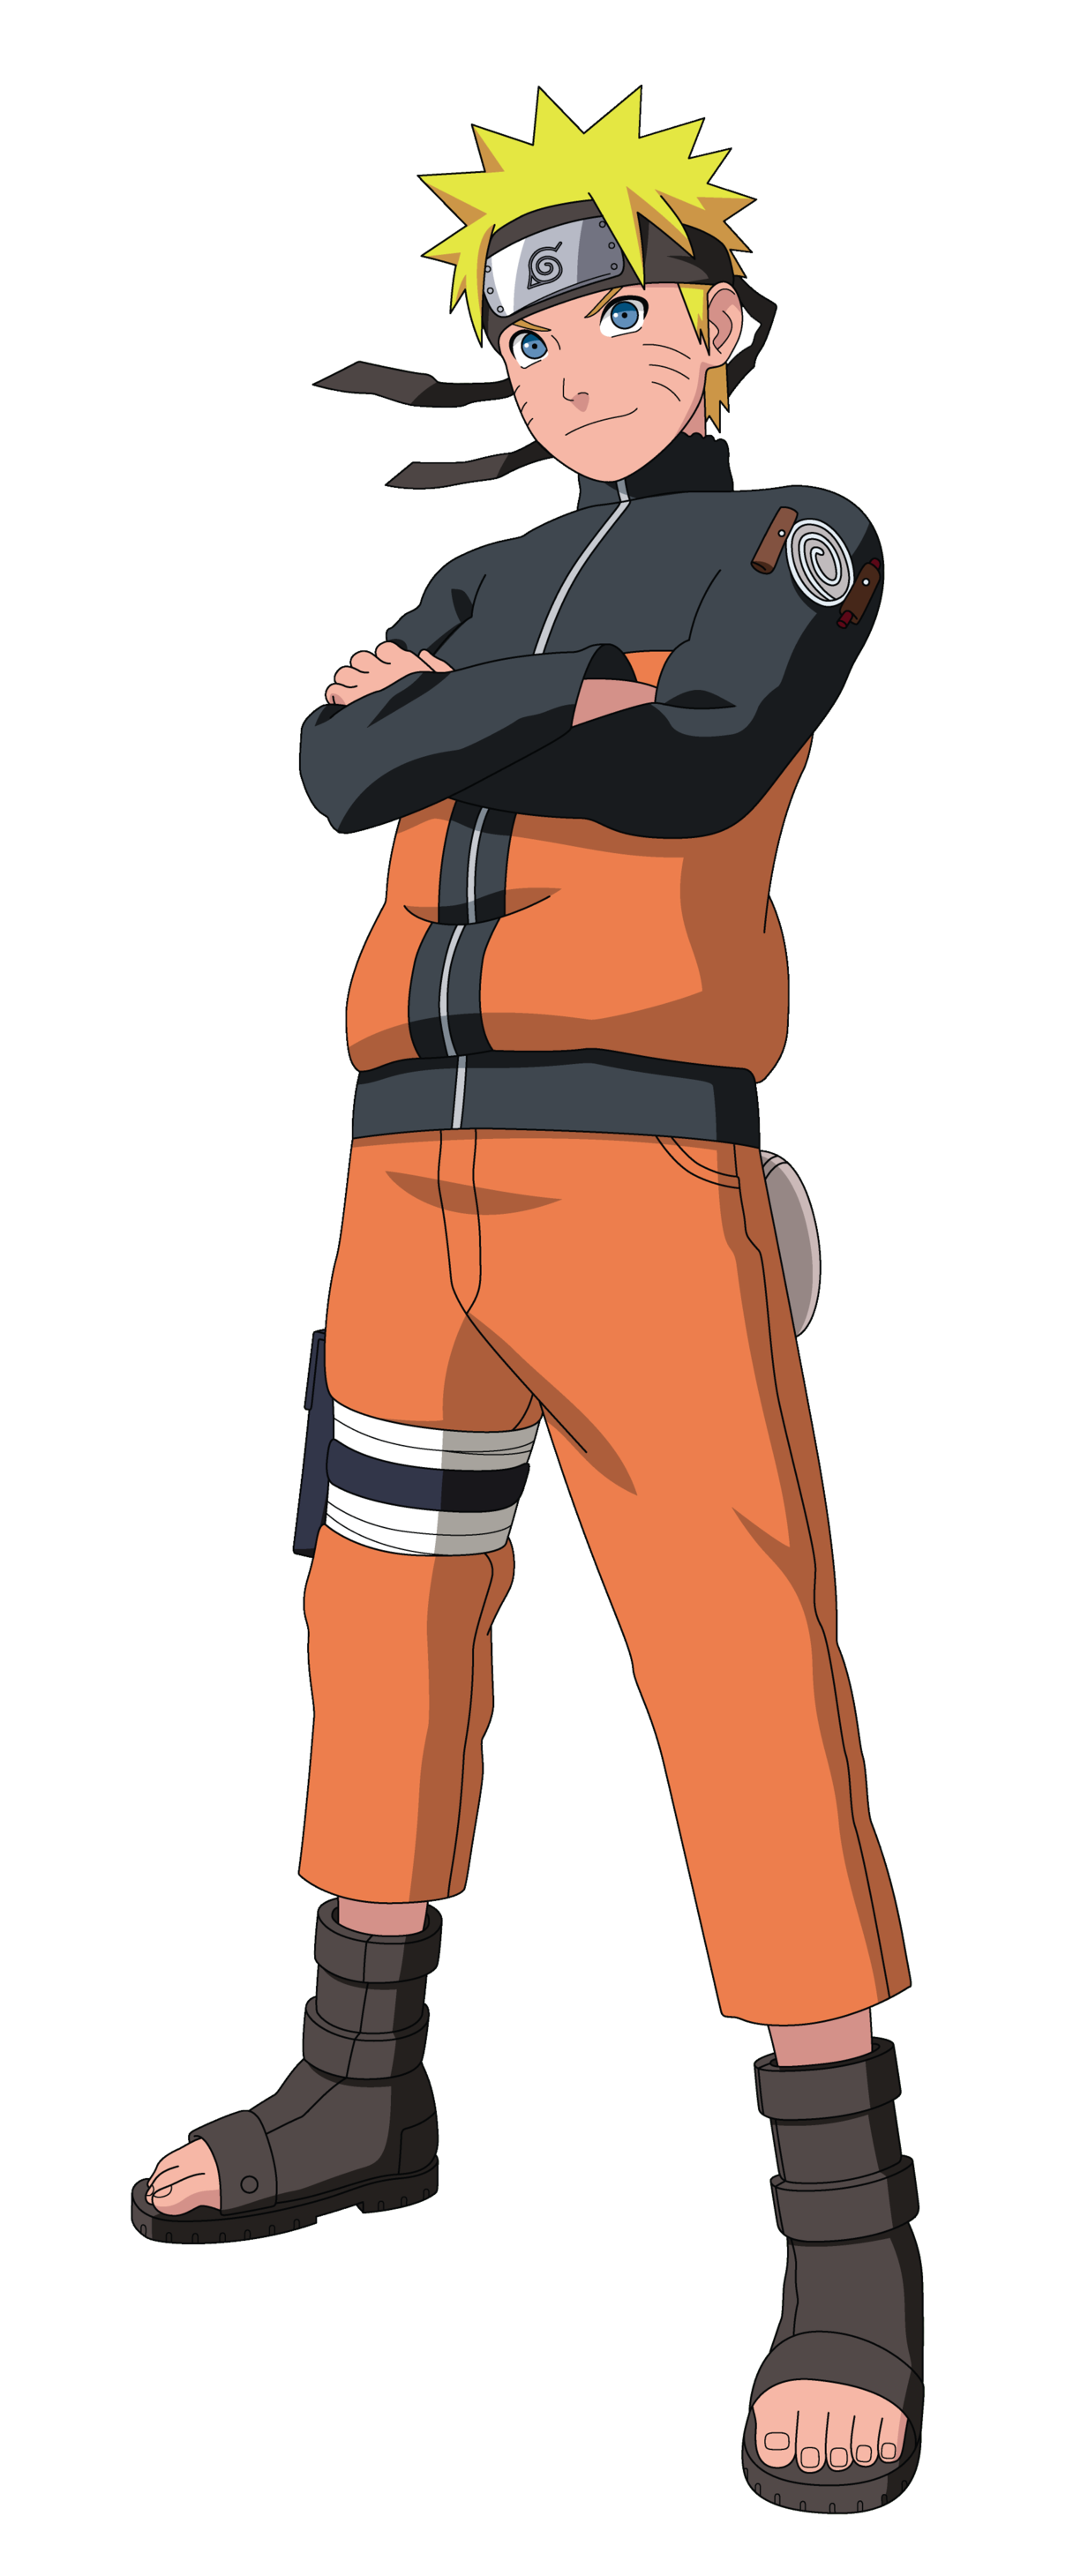 Naruto Png Picture Gallery Yopriceville High Quality Images And Transparent Png Free Clipart Naruto Uzumaki Naruto Images Naruto Shippuden Anime